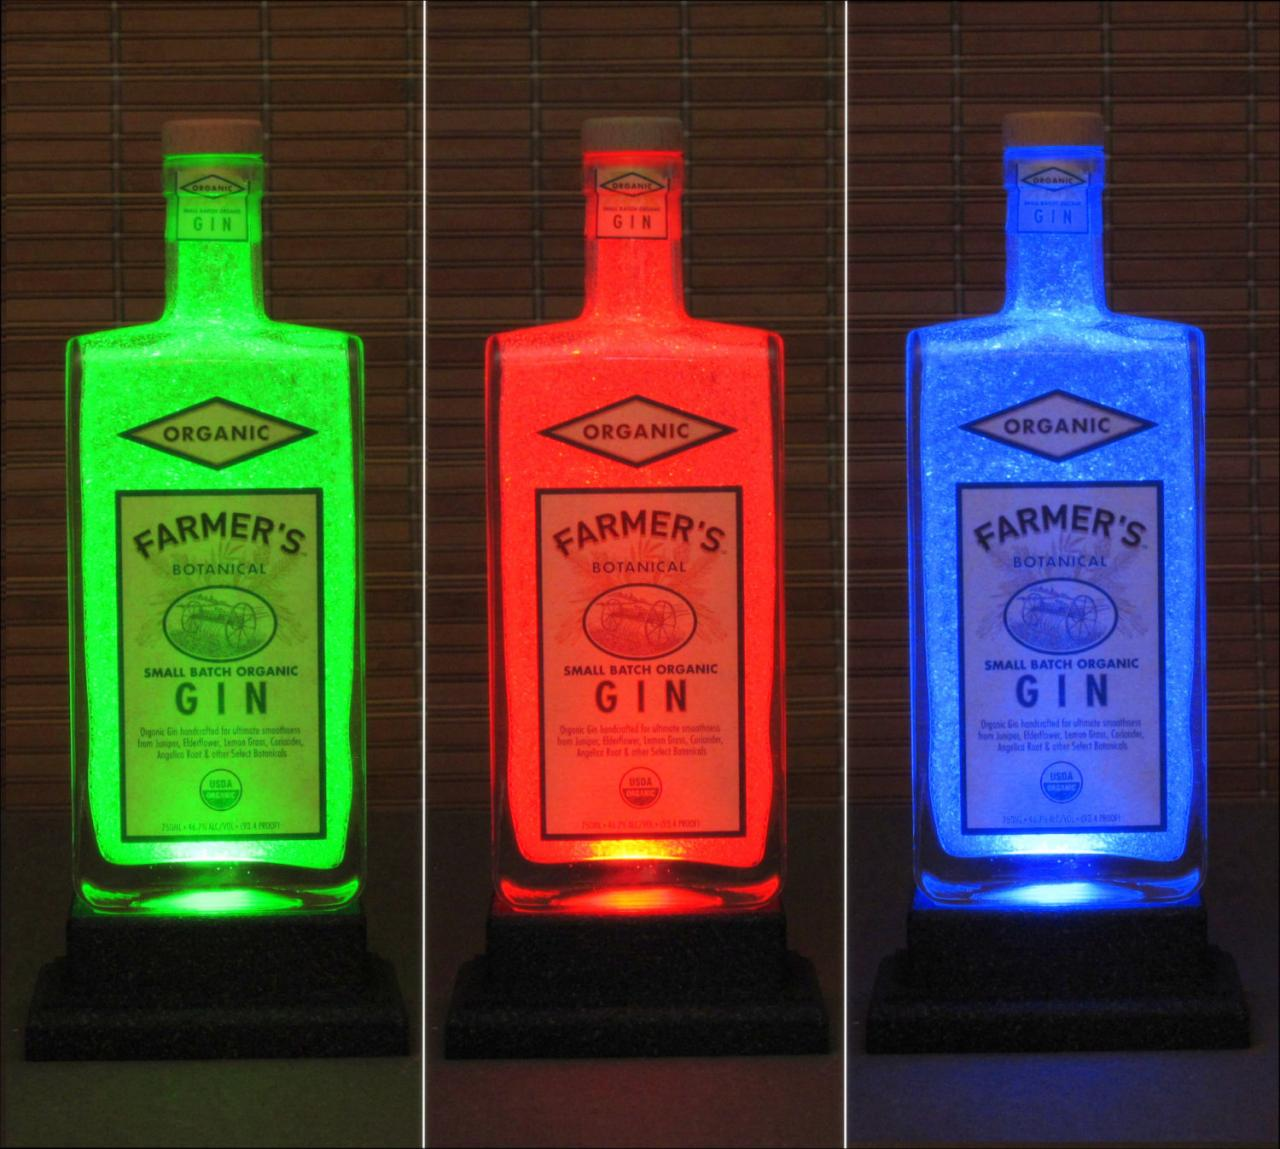 Farmers Organic Gin Color Changing Bottle Lamp Bar Light LED Remote Control Bodacious Bottles